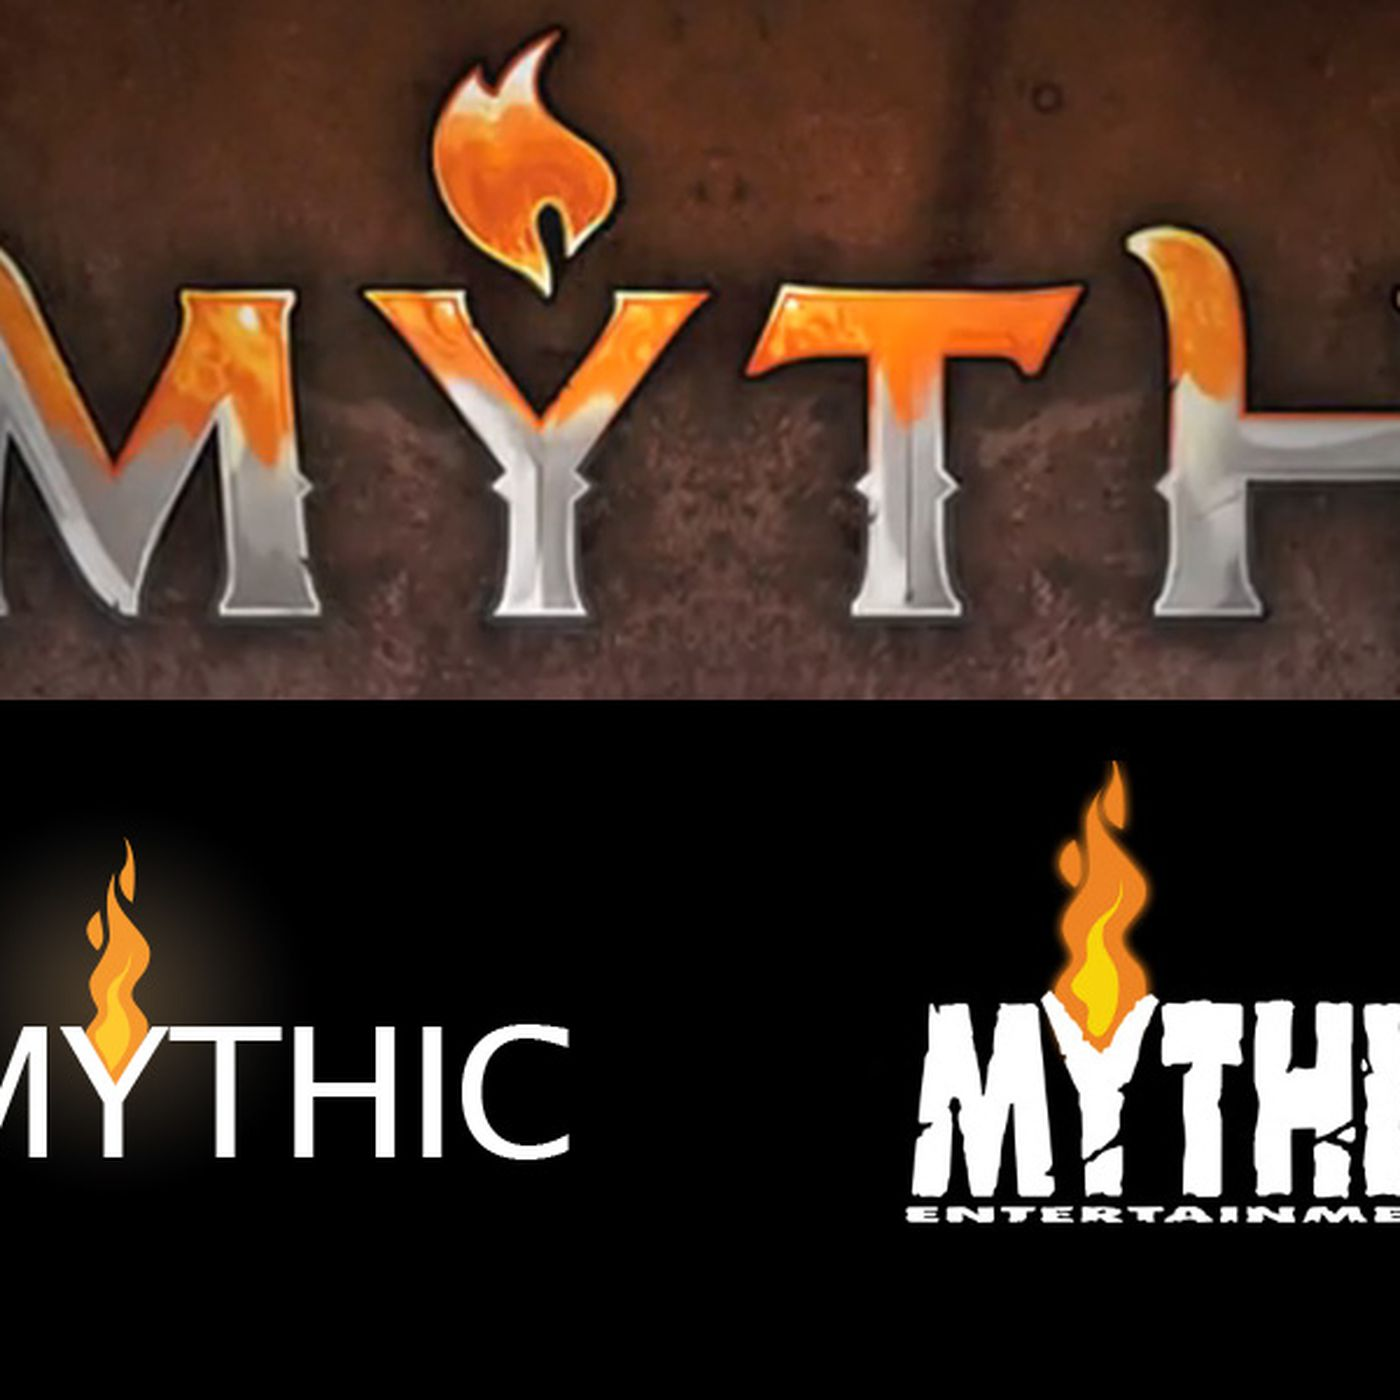 Mercs Minis changes Myth board game logo after receiving EA cease